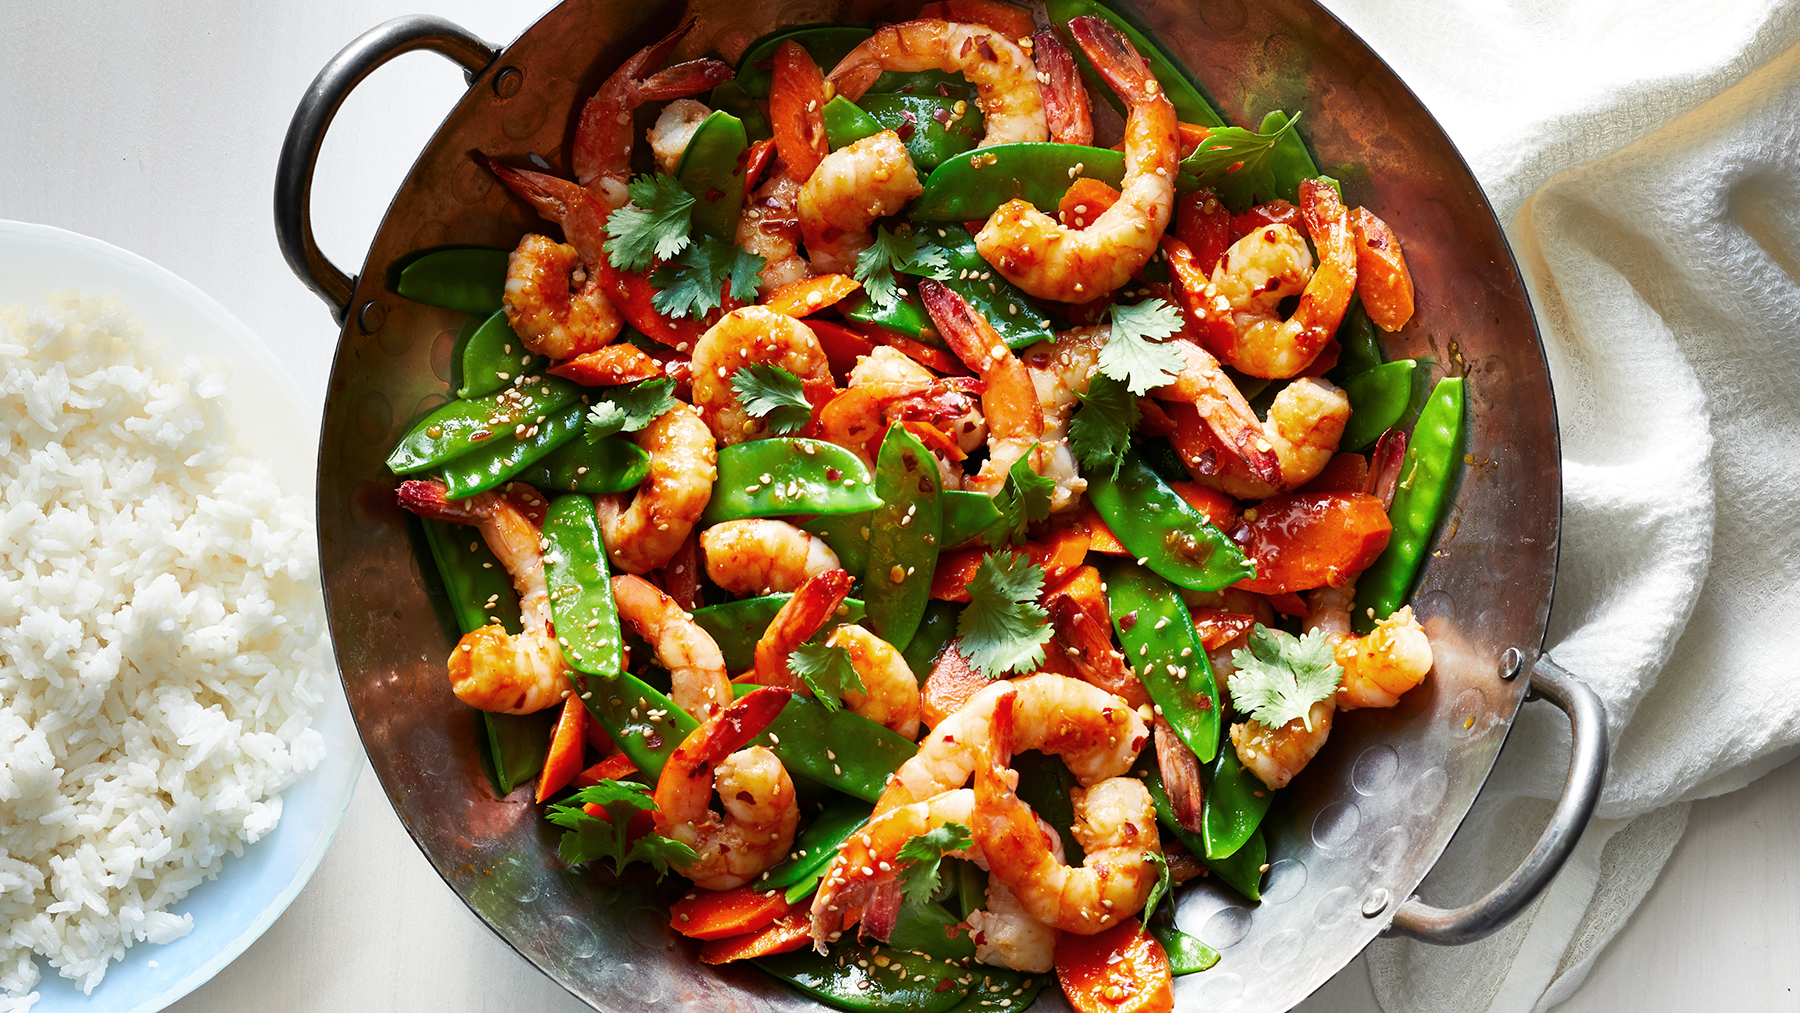 Spicy Sambal Shrimp Stir-Fry